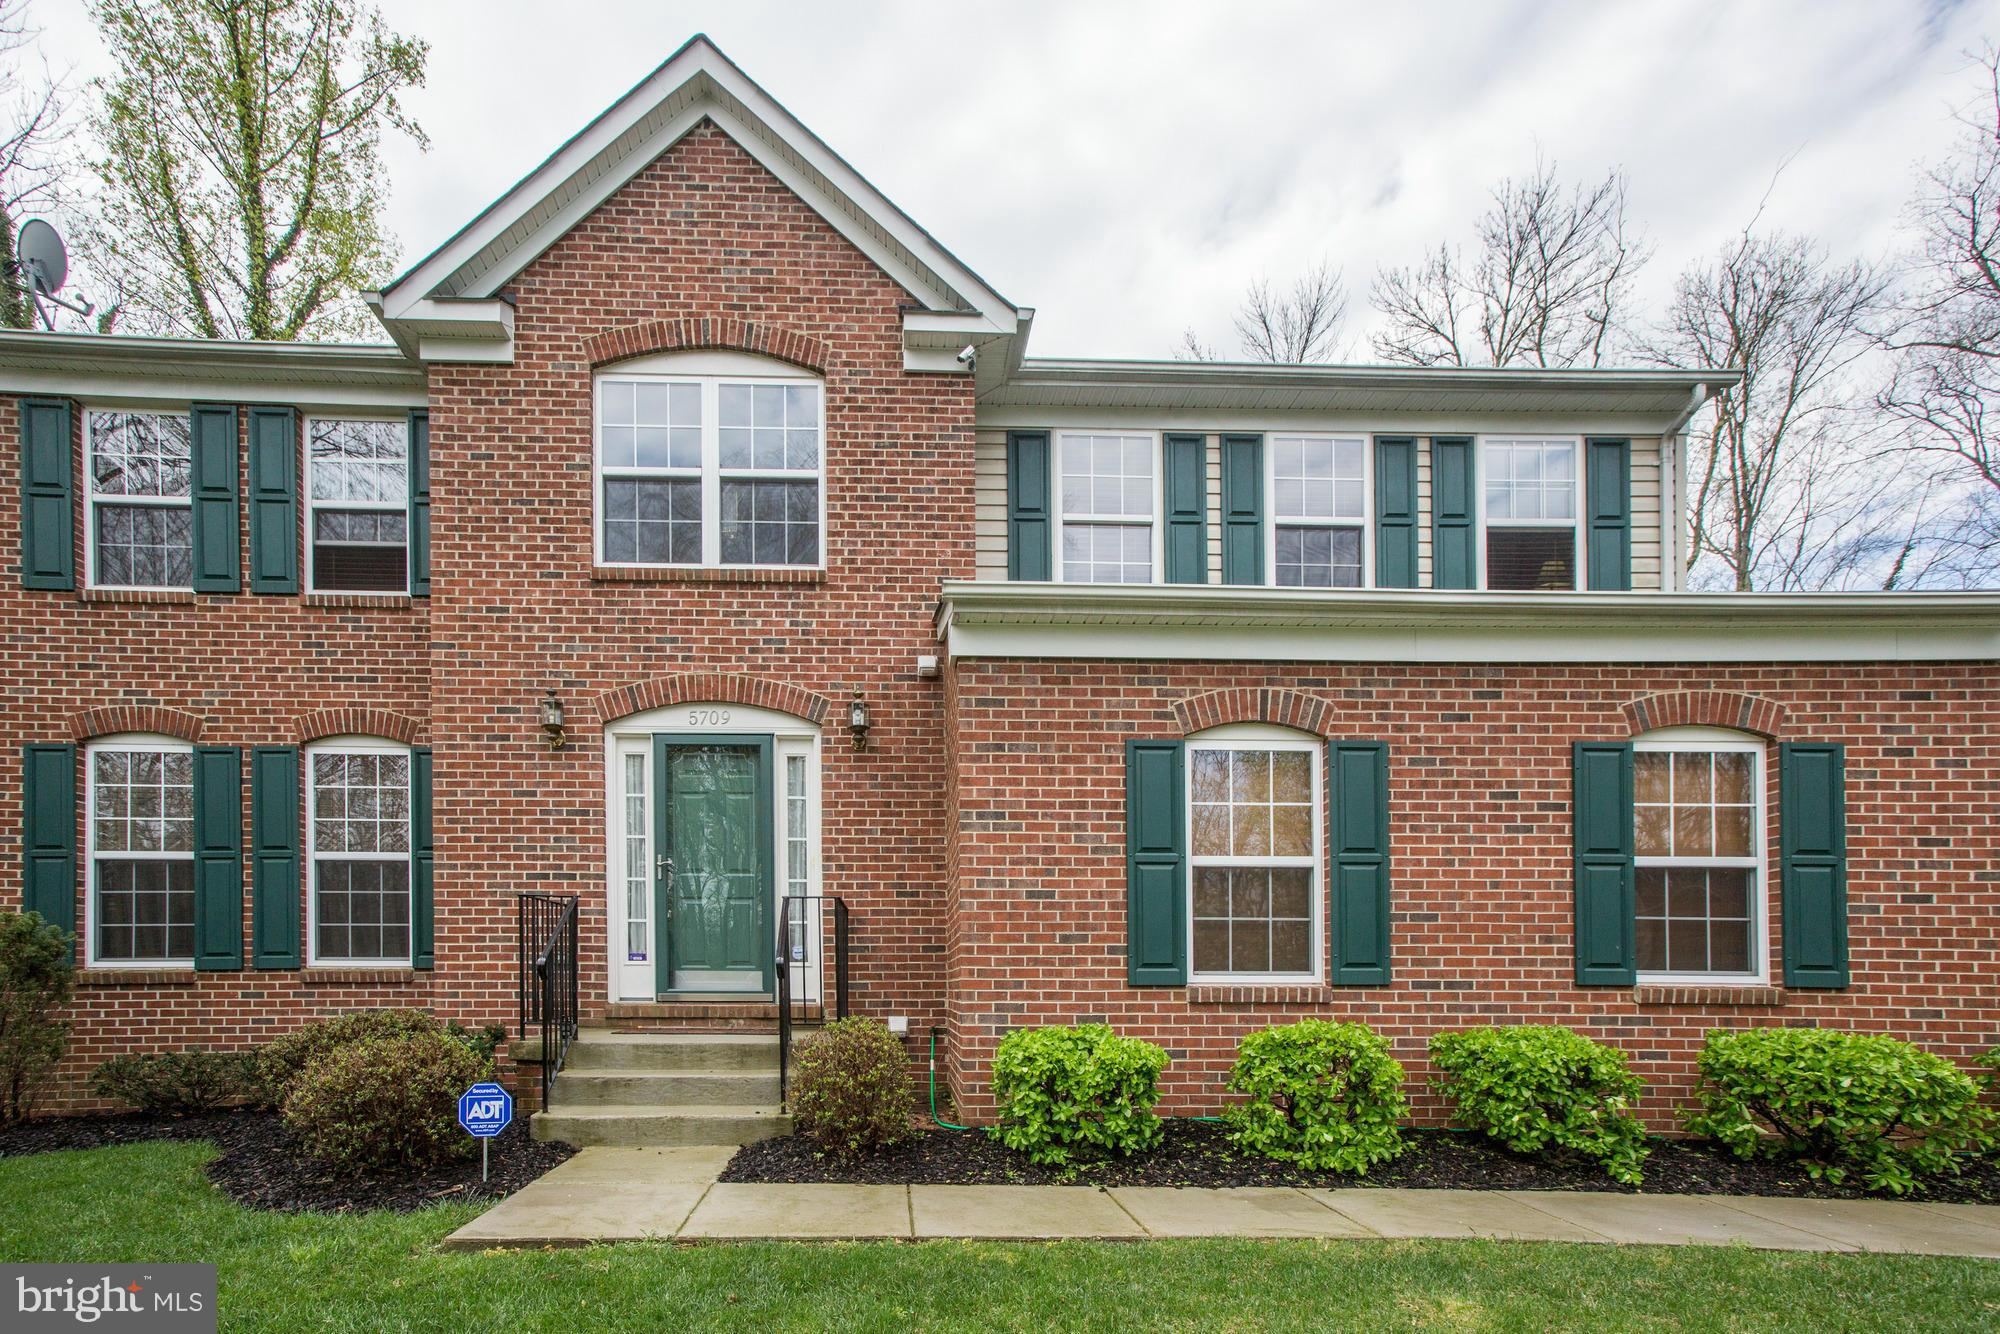 5709 CANADA STREET, CAPITOL HEIGHTS, MD 20743